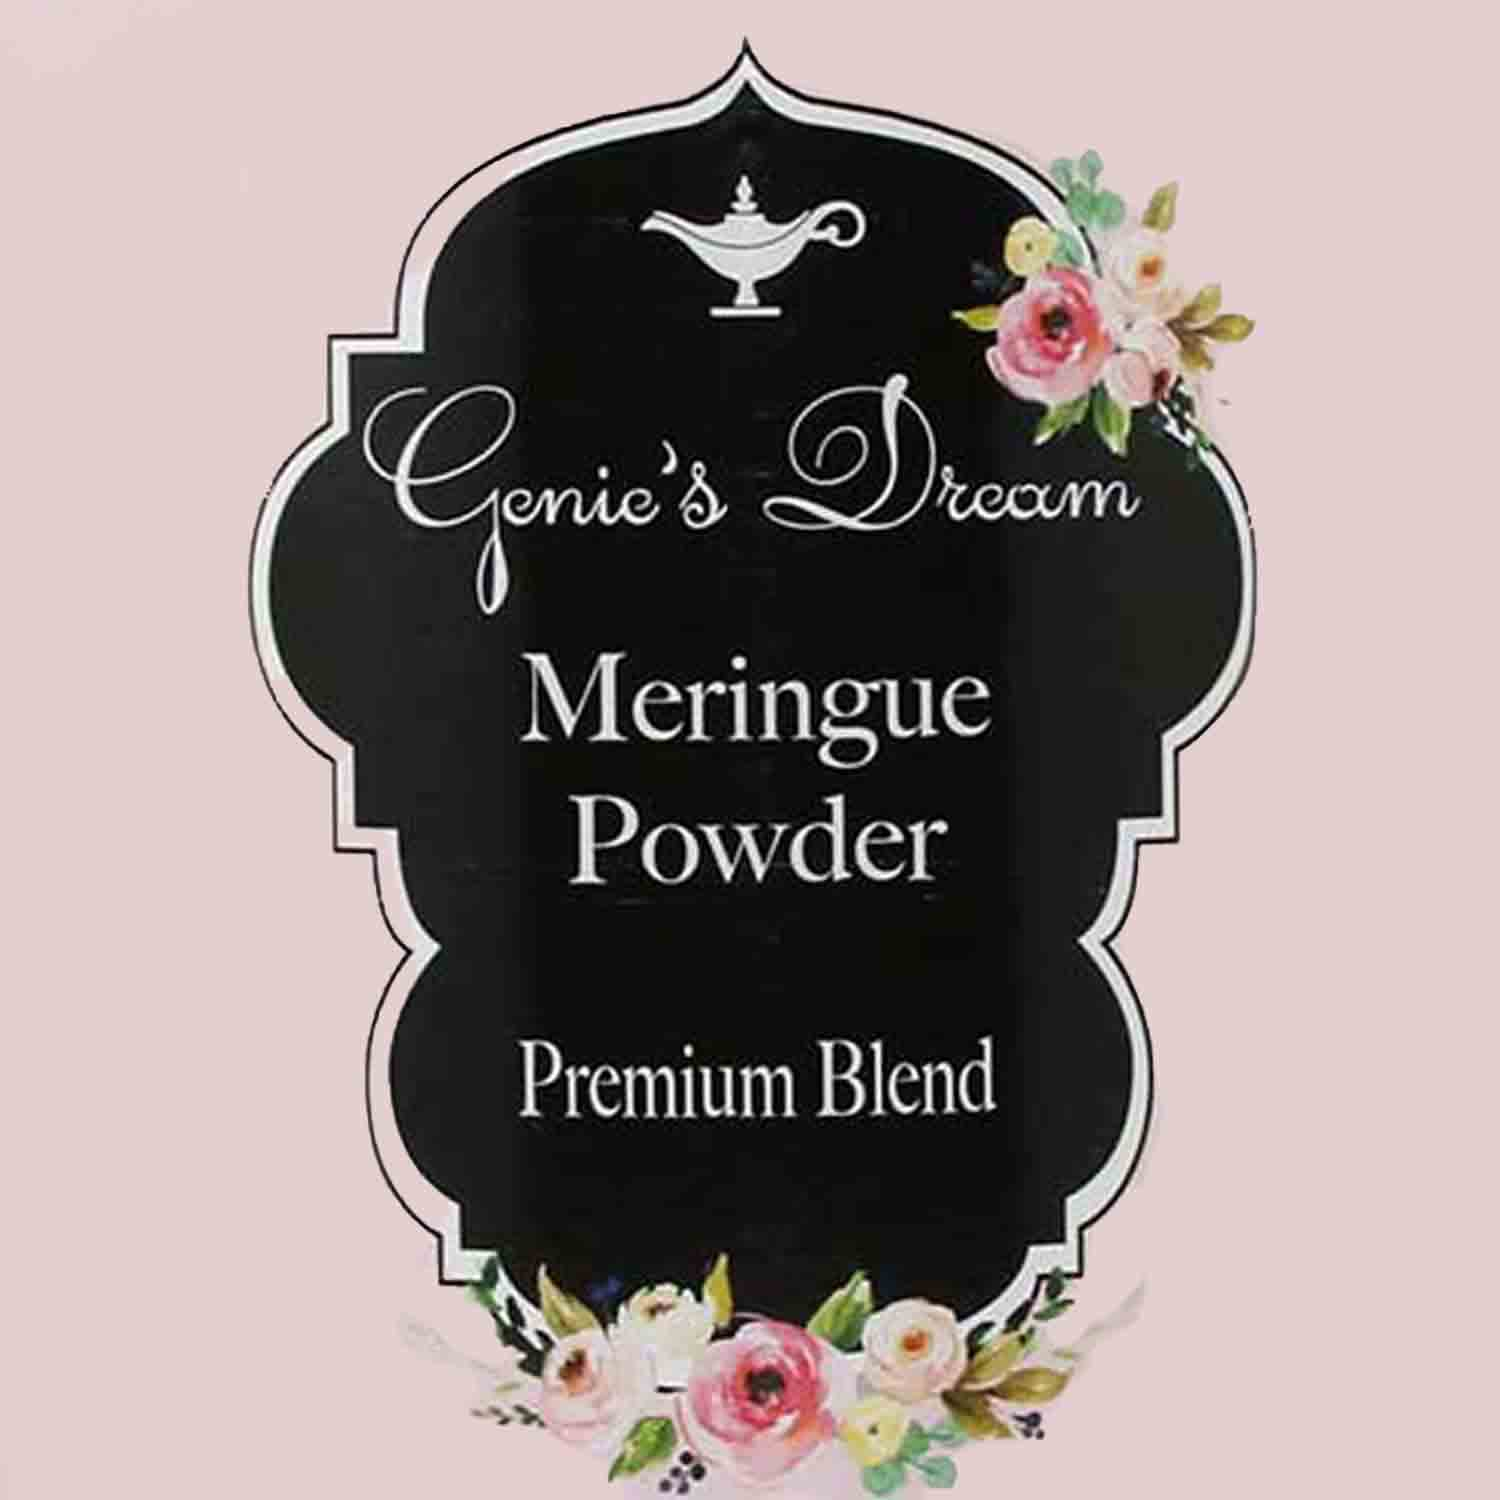 Genie's Dream Meringue Powder